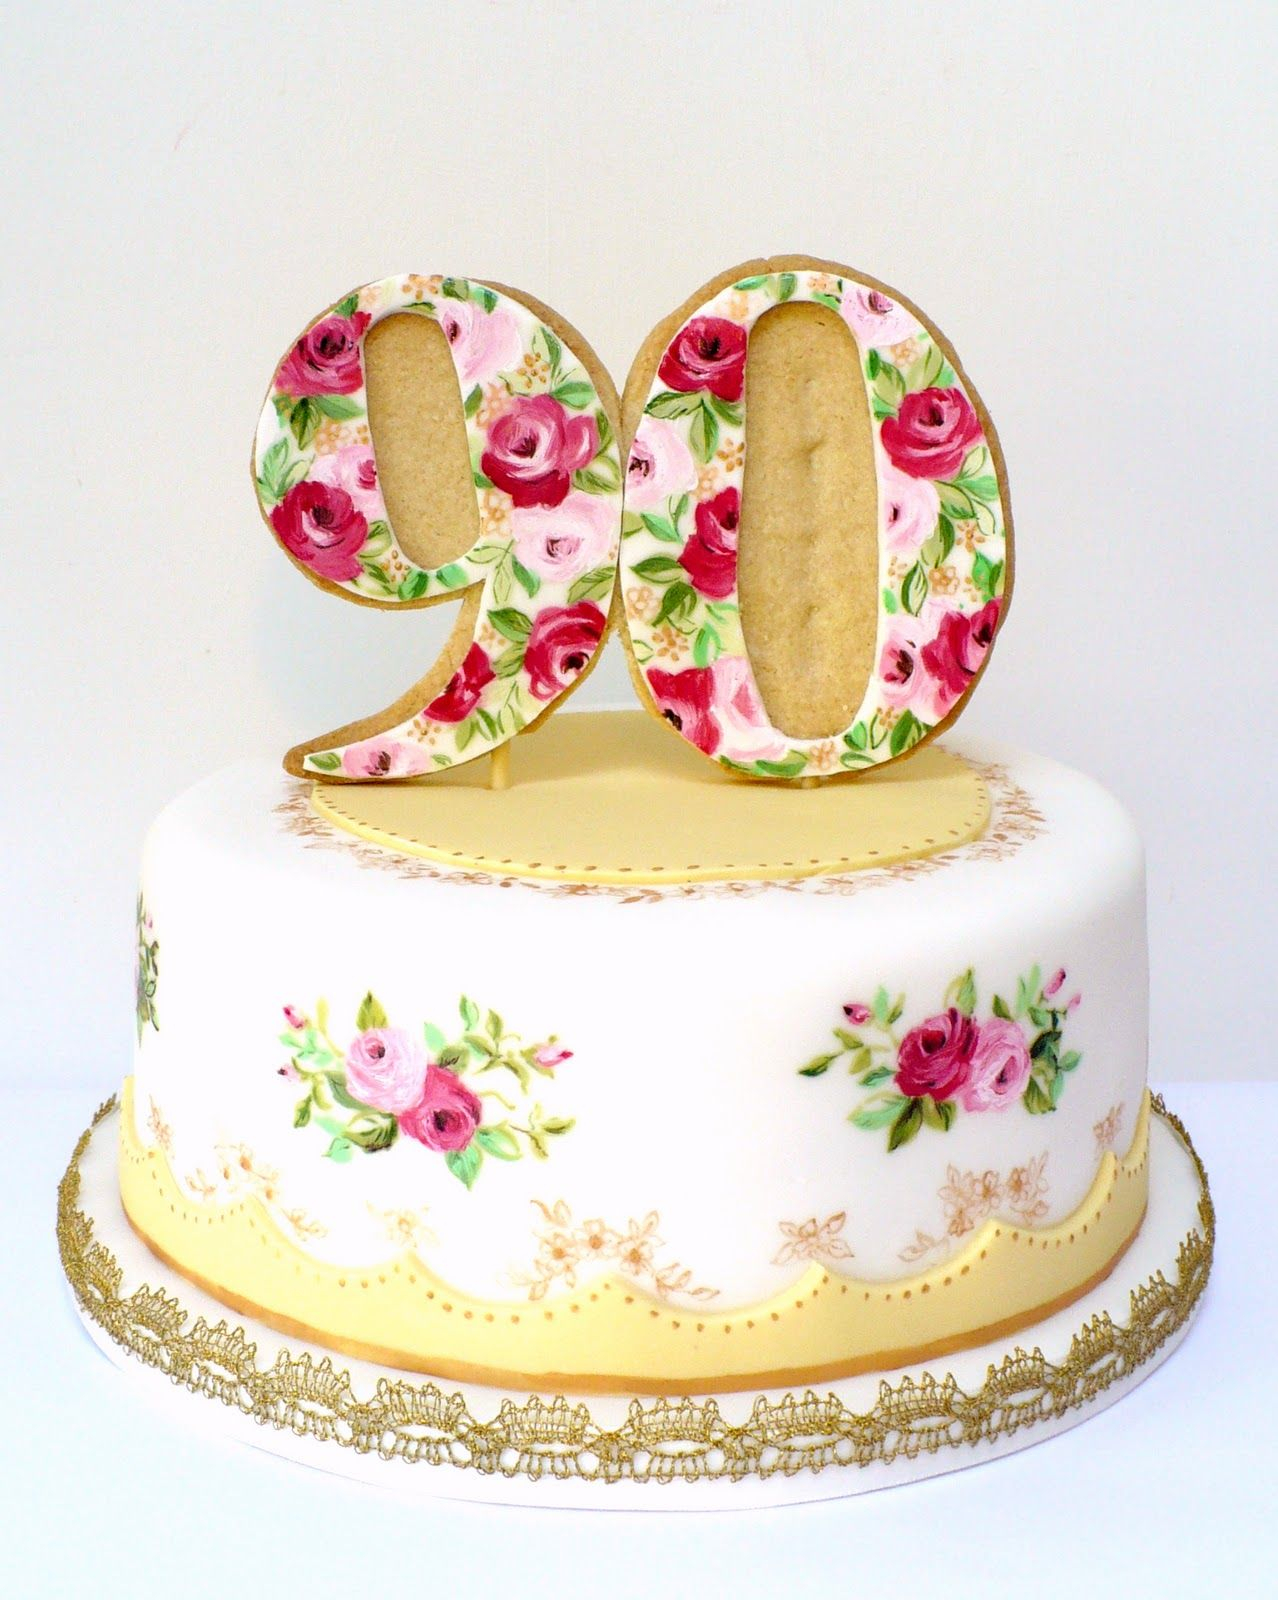 90Th Birthday Cake Ideas Wow 90th Birthday Cake To Match A Vintage Tea Set Beautiful But